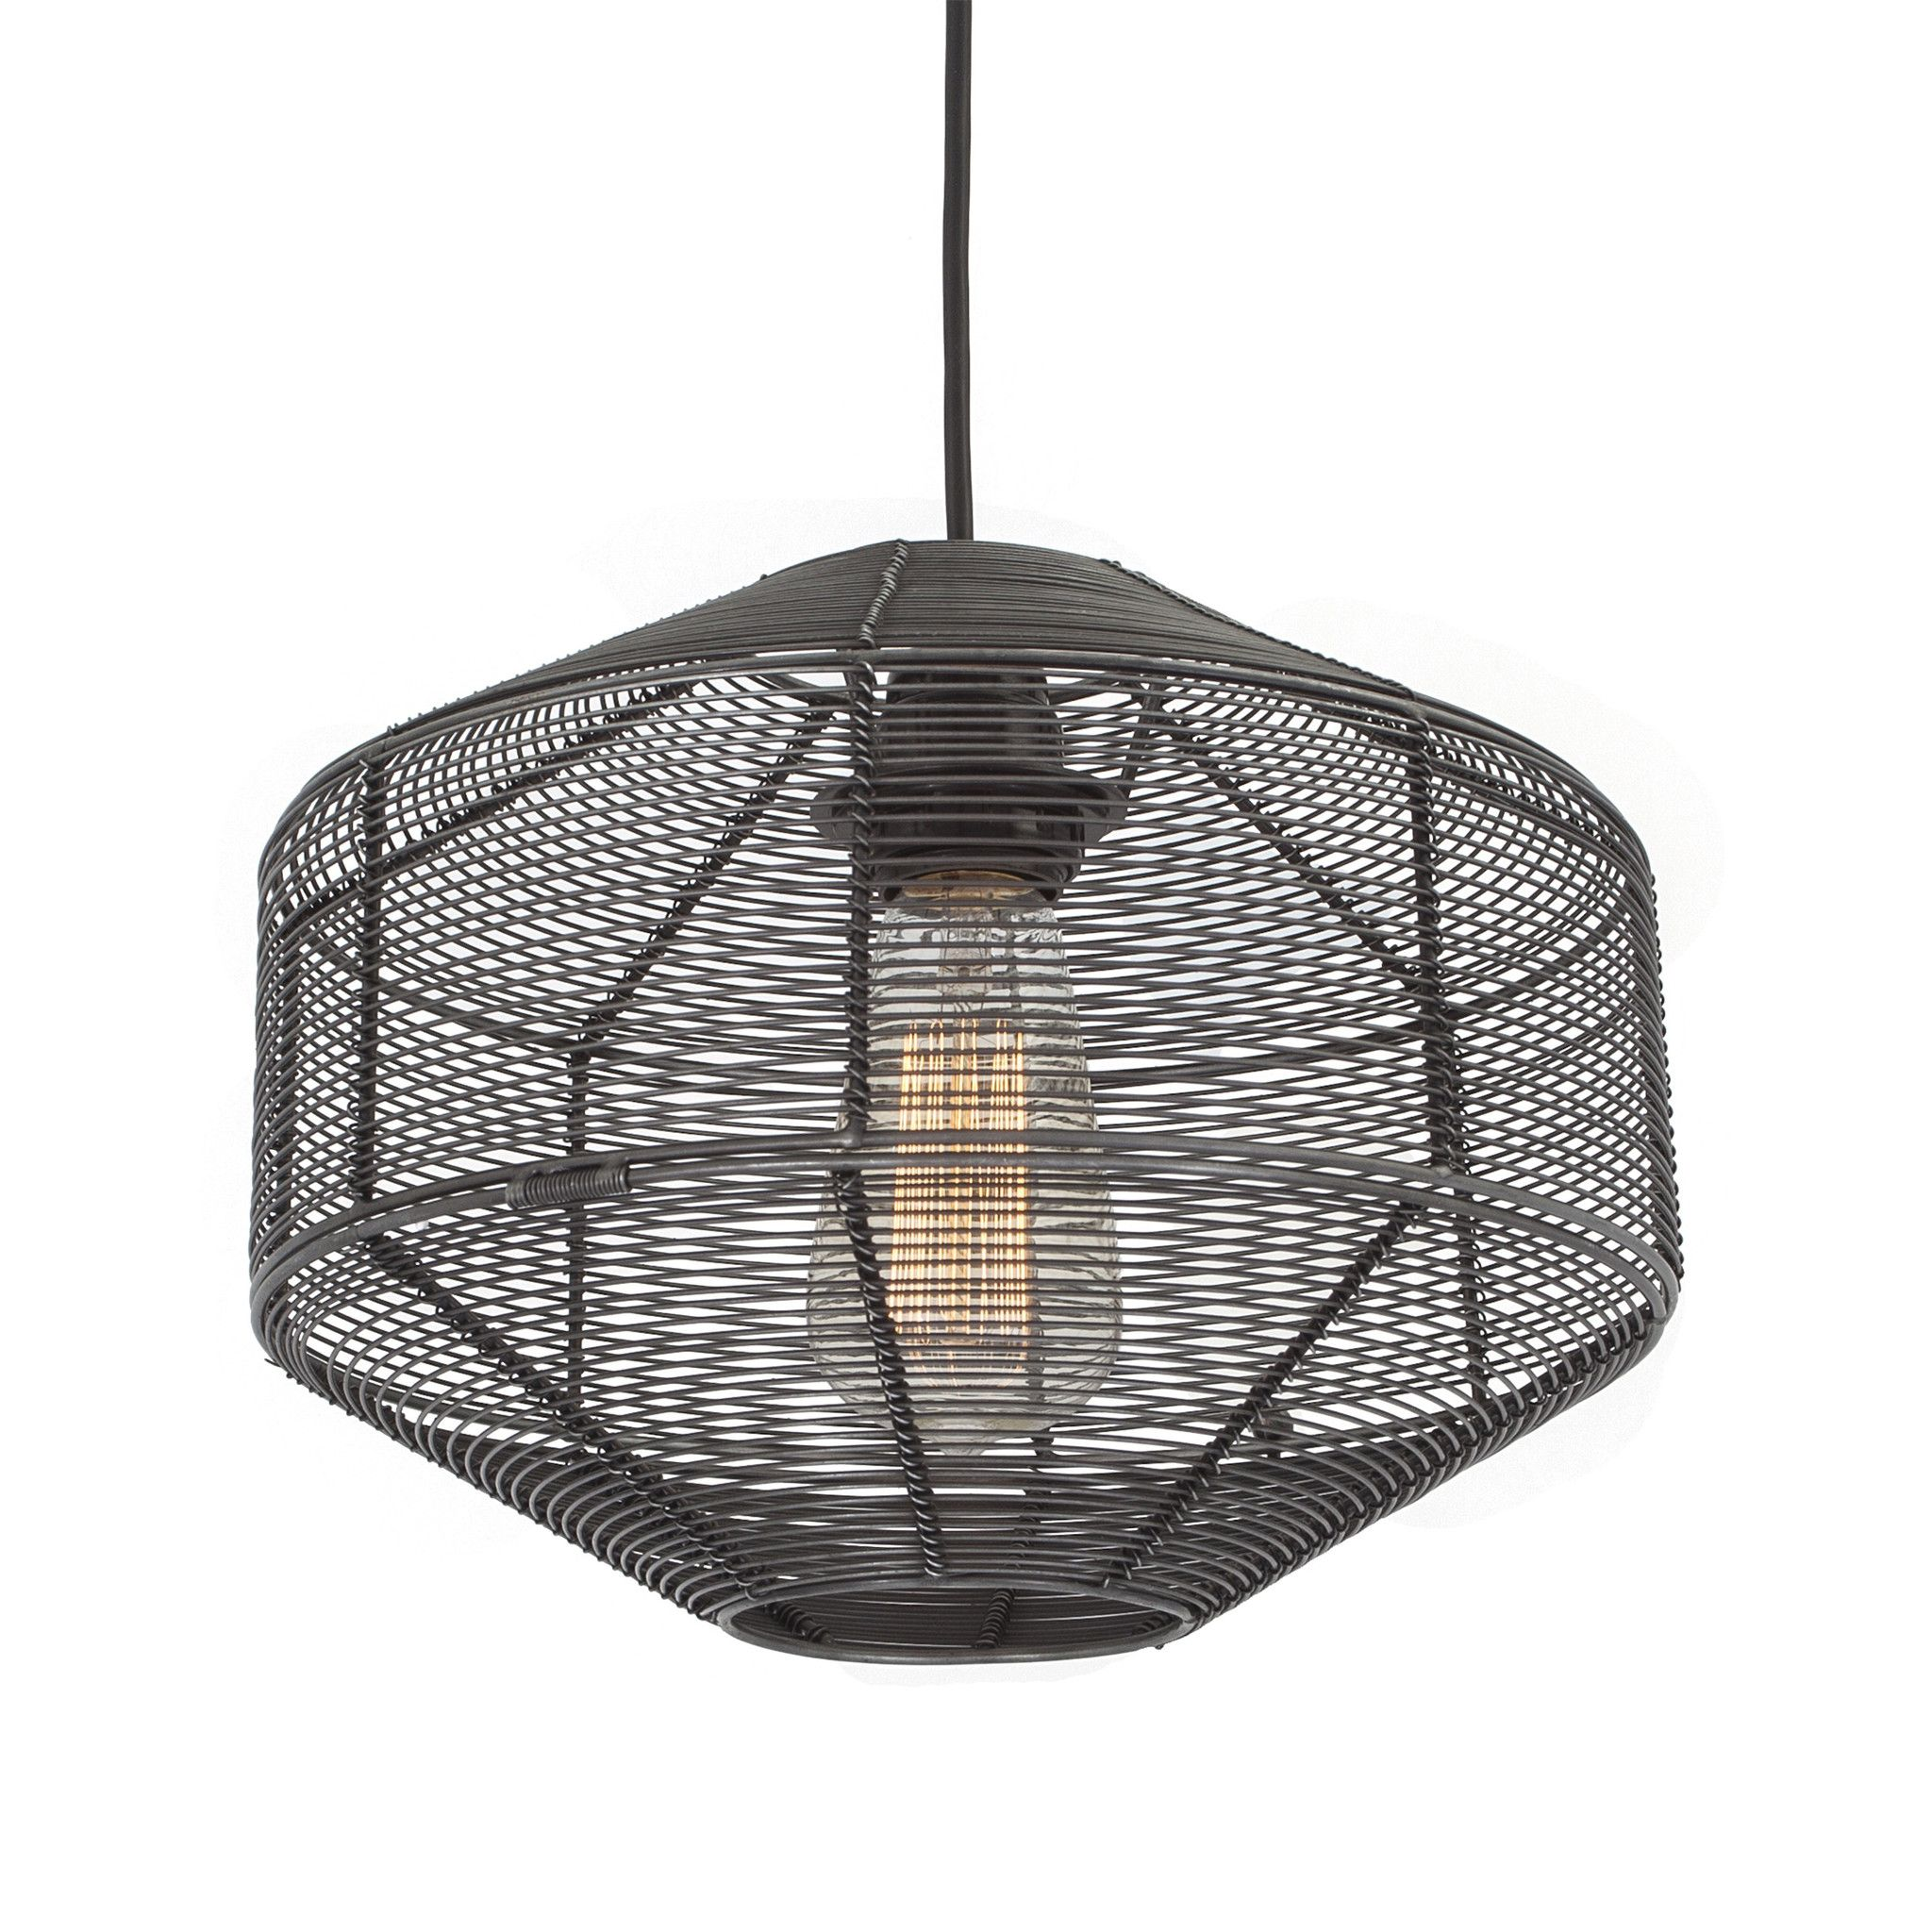 Pad lifestyle soho round wire cage pendant light add a unique